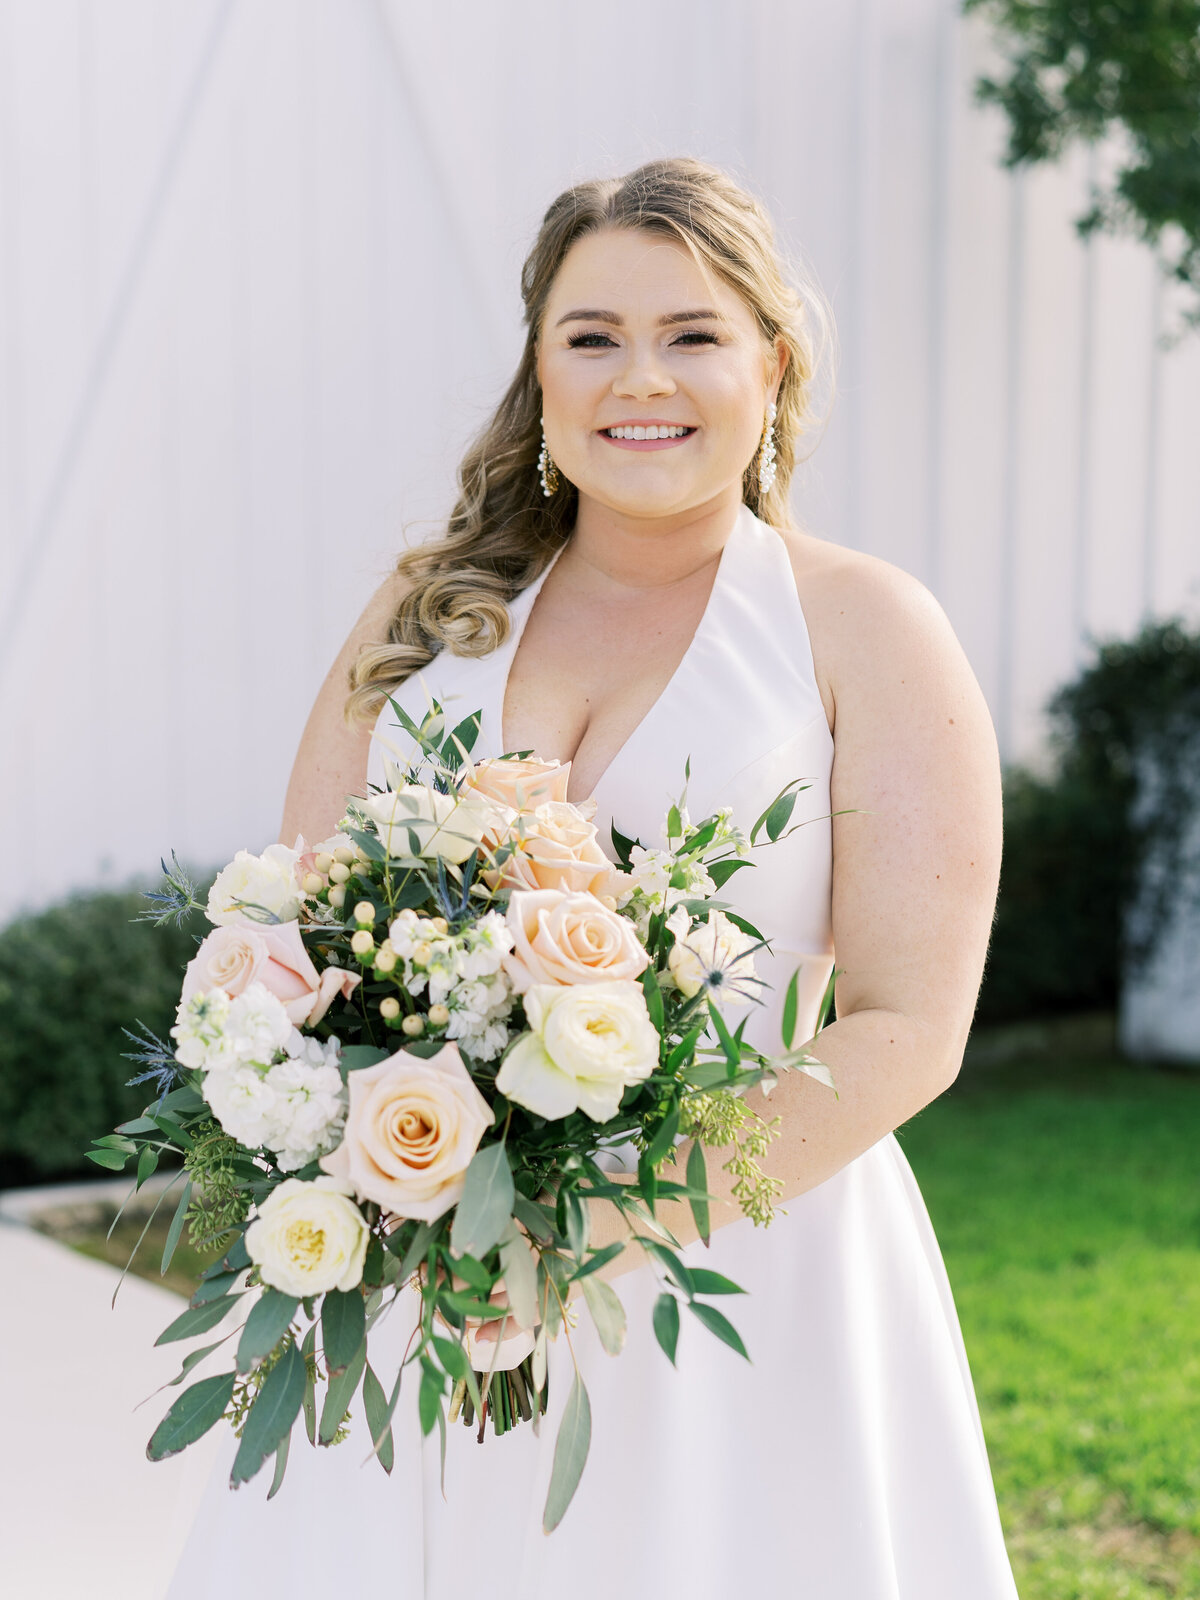 the-farmhouse-wedding-houston-texas-wedding-photographer-mackenzie-reiter-photography-66